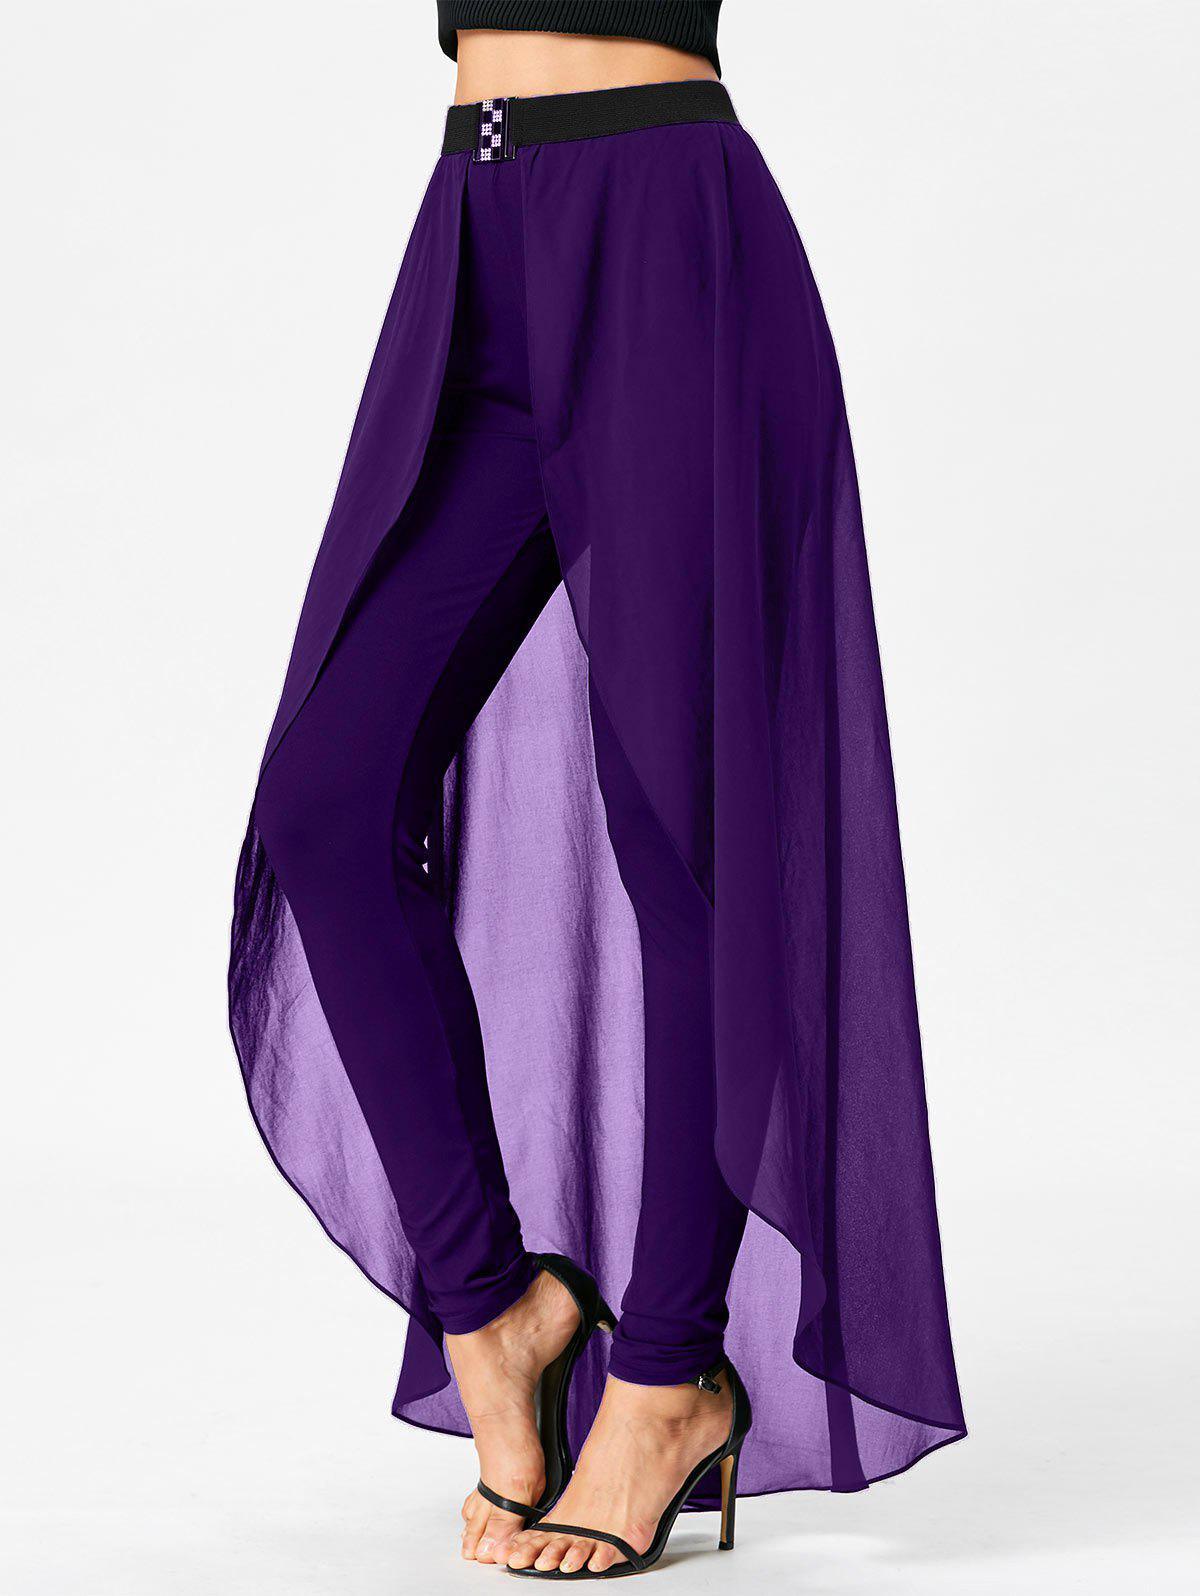 Slimming High Waist Skirted PantsWOMEN<br><br>Size: XL; Color: PURPLE; Style: Fashion; Length: Normal; Material: Cotton,Polyester; Fit Type: Regular; Waist Type: High; Closure Type: Elastic Waist; Front Style: Flat; Pattern Type: Solid; Pant Style: Pencil Pants; With Belt: No; Weight: 0.4000kg; Package Contents: 1 x Pants 1 x Skirt;